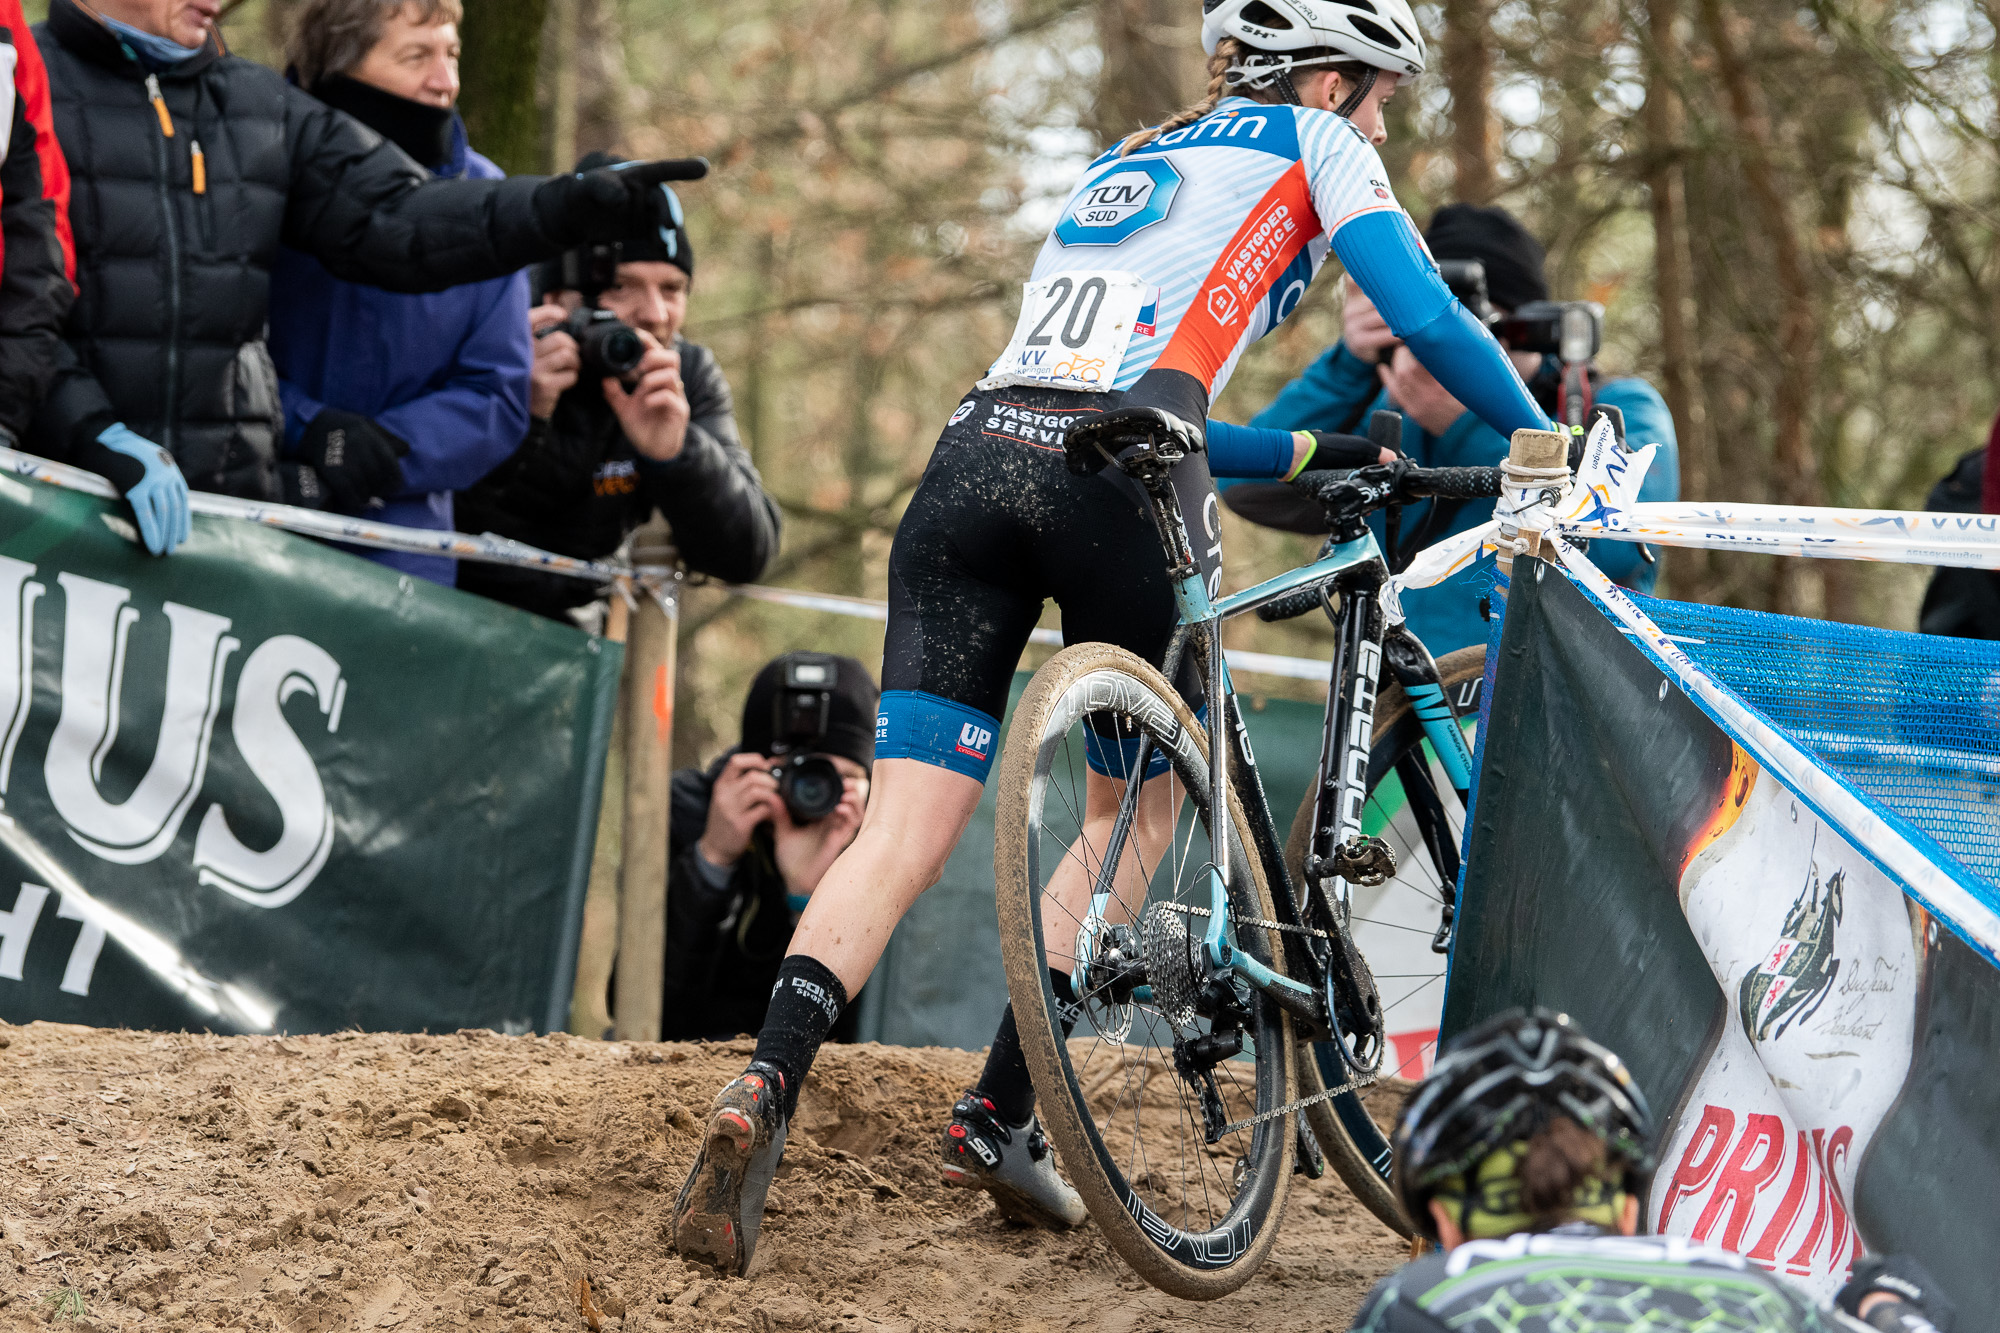 Karen Verhestraeten in one the S-turn sections of the course.